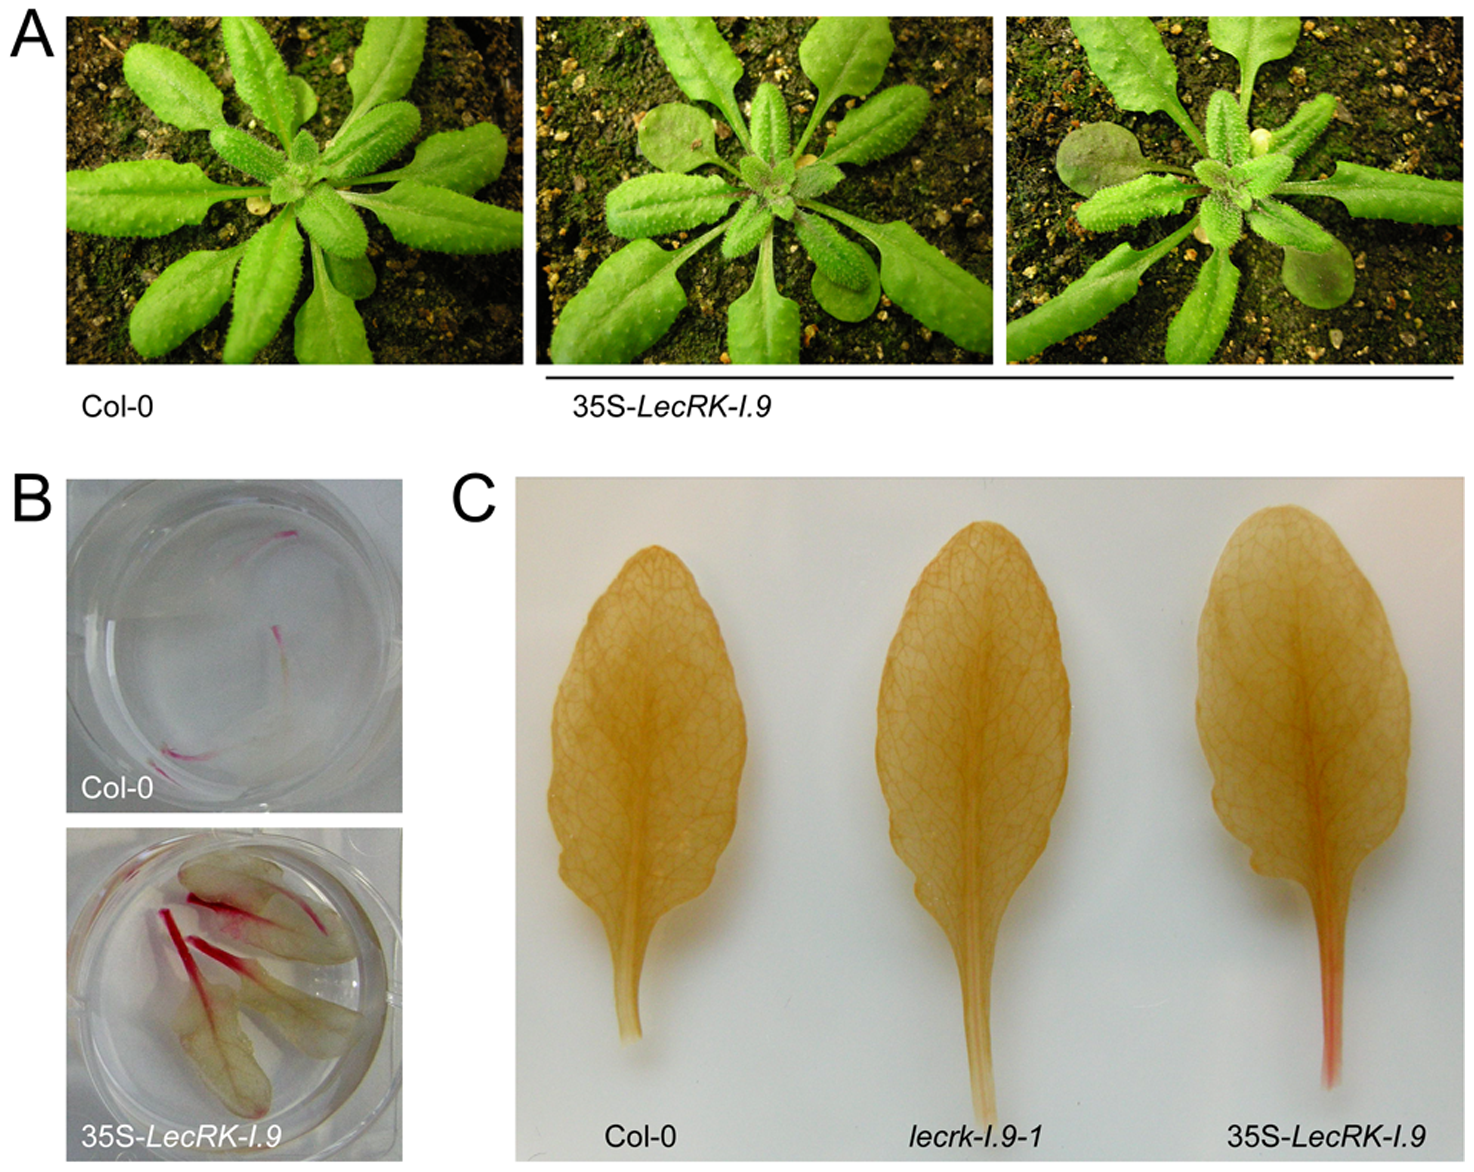 <i>LecRK-I.9</i> overexpression in Arabidopsis leads to changes in morphology and accumulation of anthocyanin and lignin.